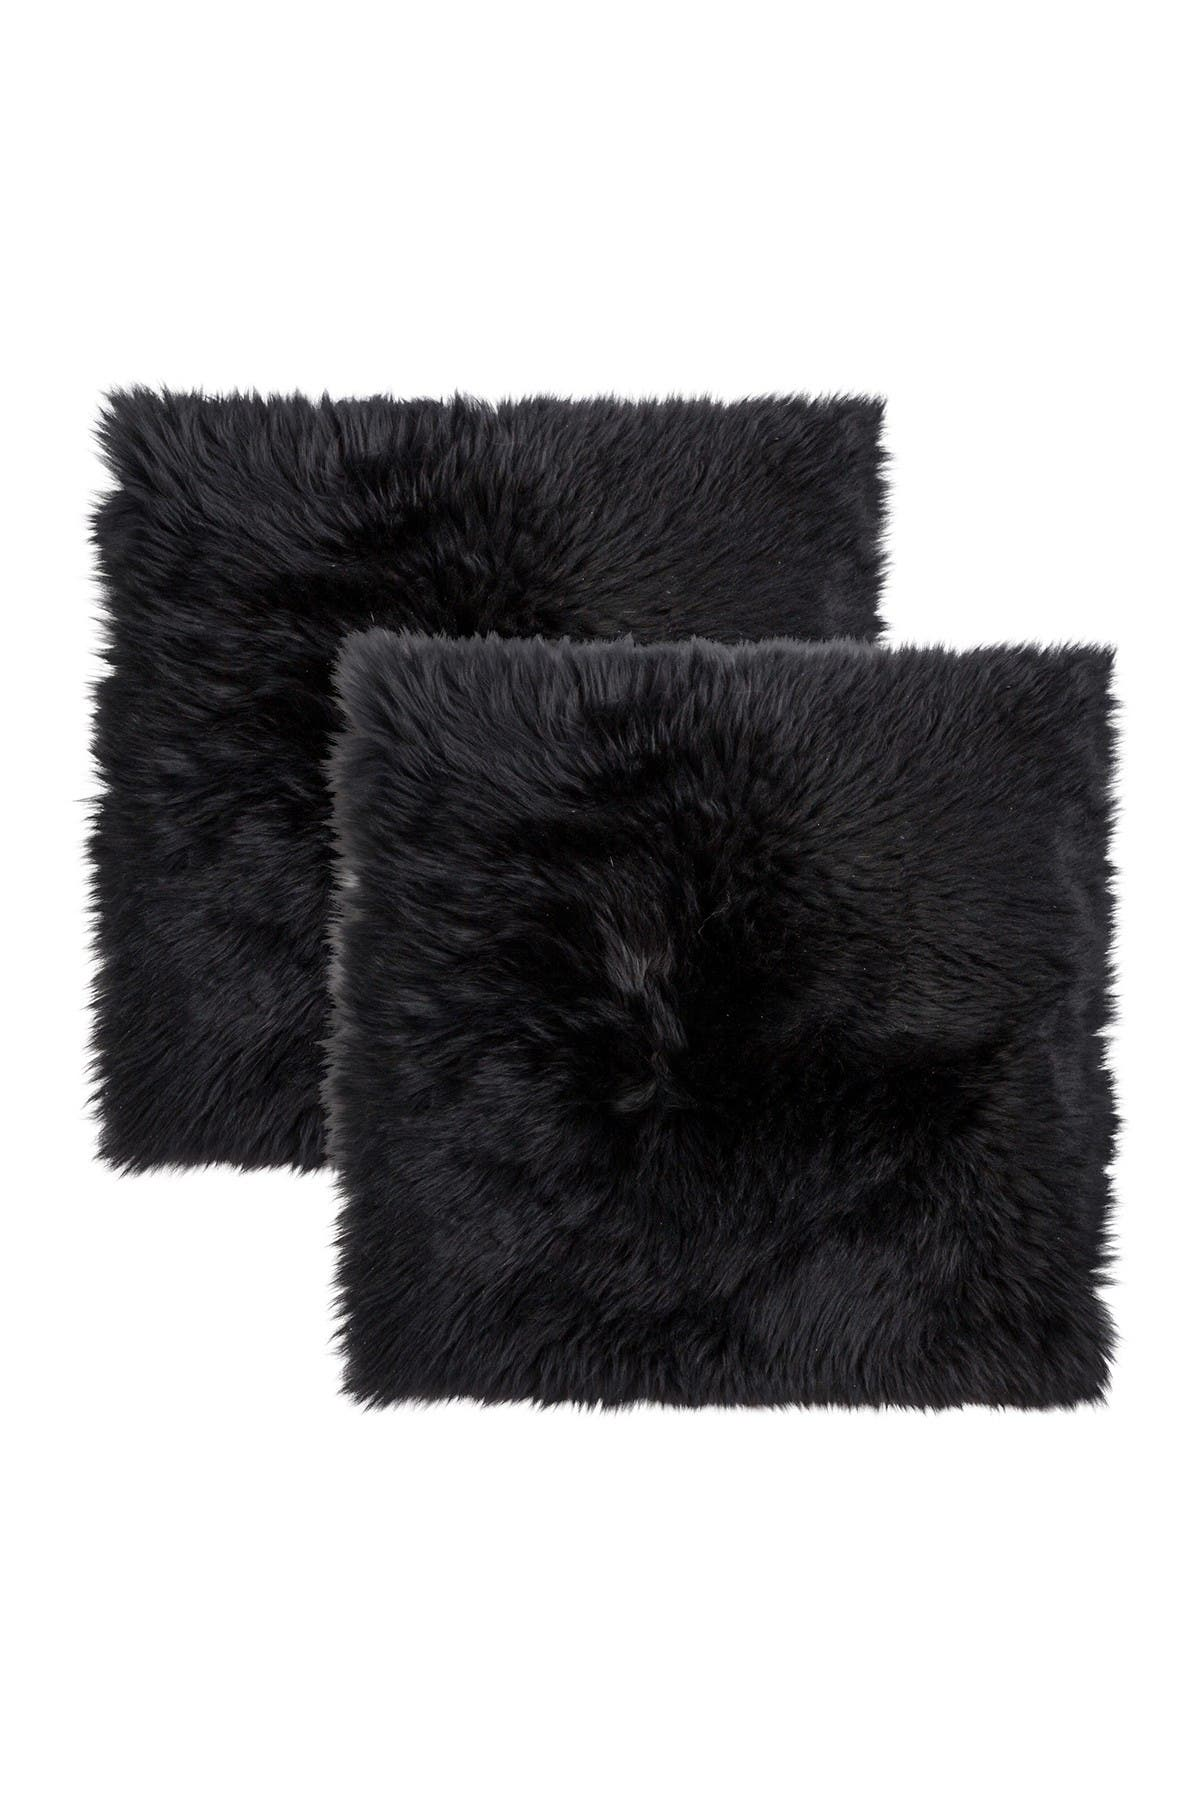 """Image of Natural New Zealand Genuine Sheepskin Shearling Chair Seat Pad - Set of 2 - 17"""" x 17"""" - Black"""